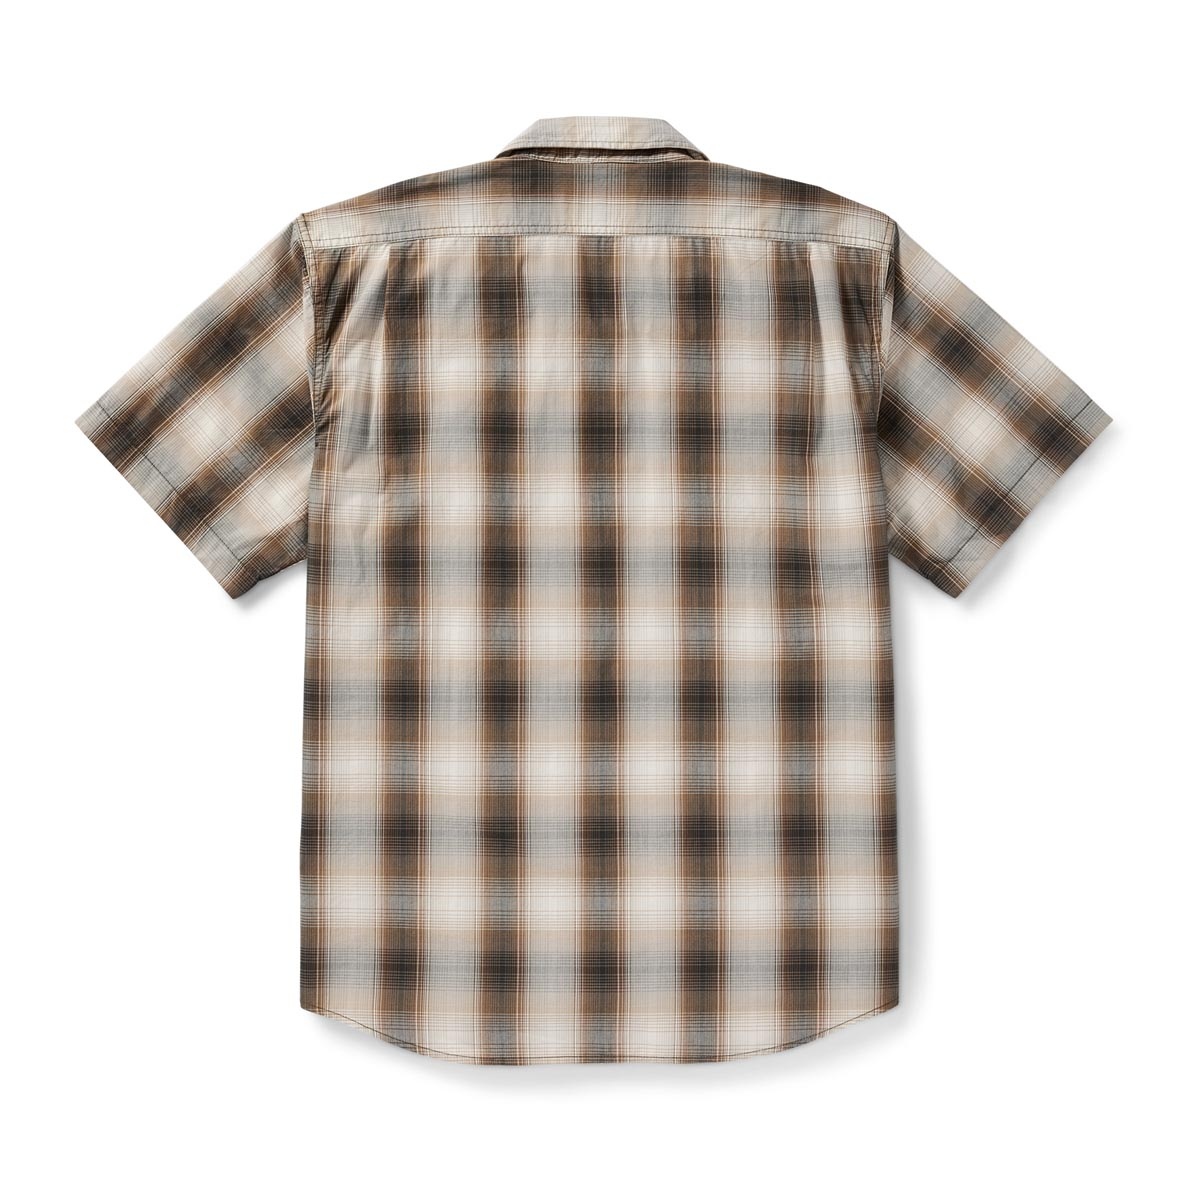 22e26a379a7ac 20008229 Filson Men s Filson s Short Sleeve Feather Cloth Shirt Filson s  Feather Cloth Shirt is the ideal travel companion. Lightweight and easily  packable